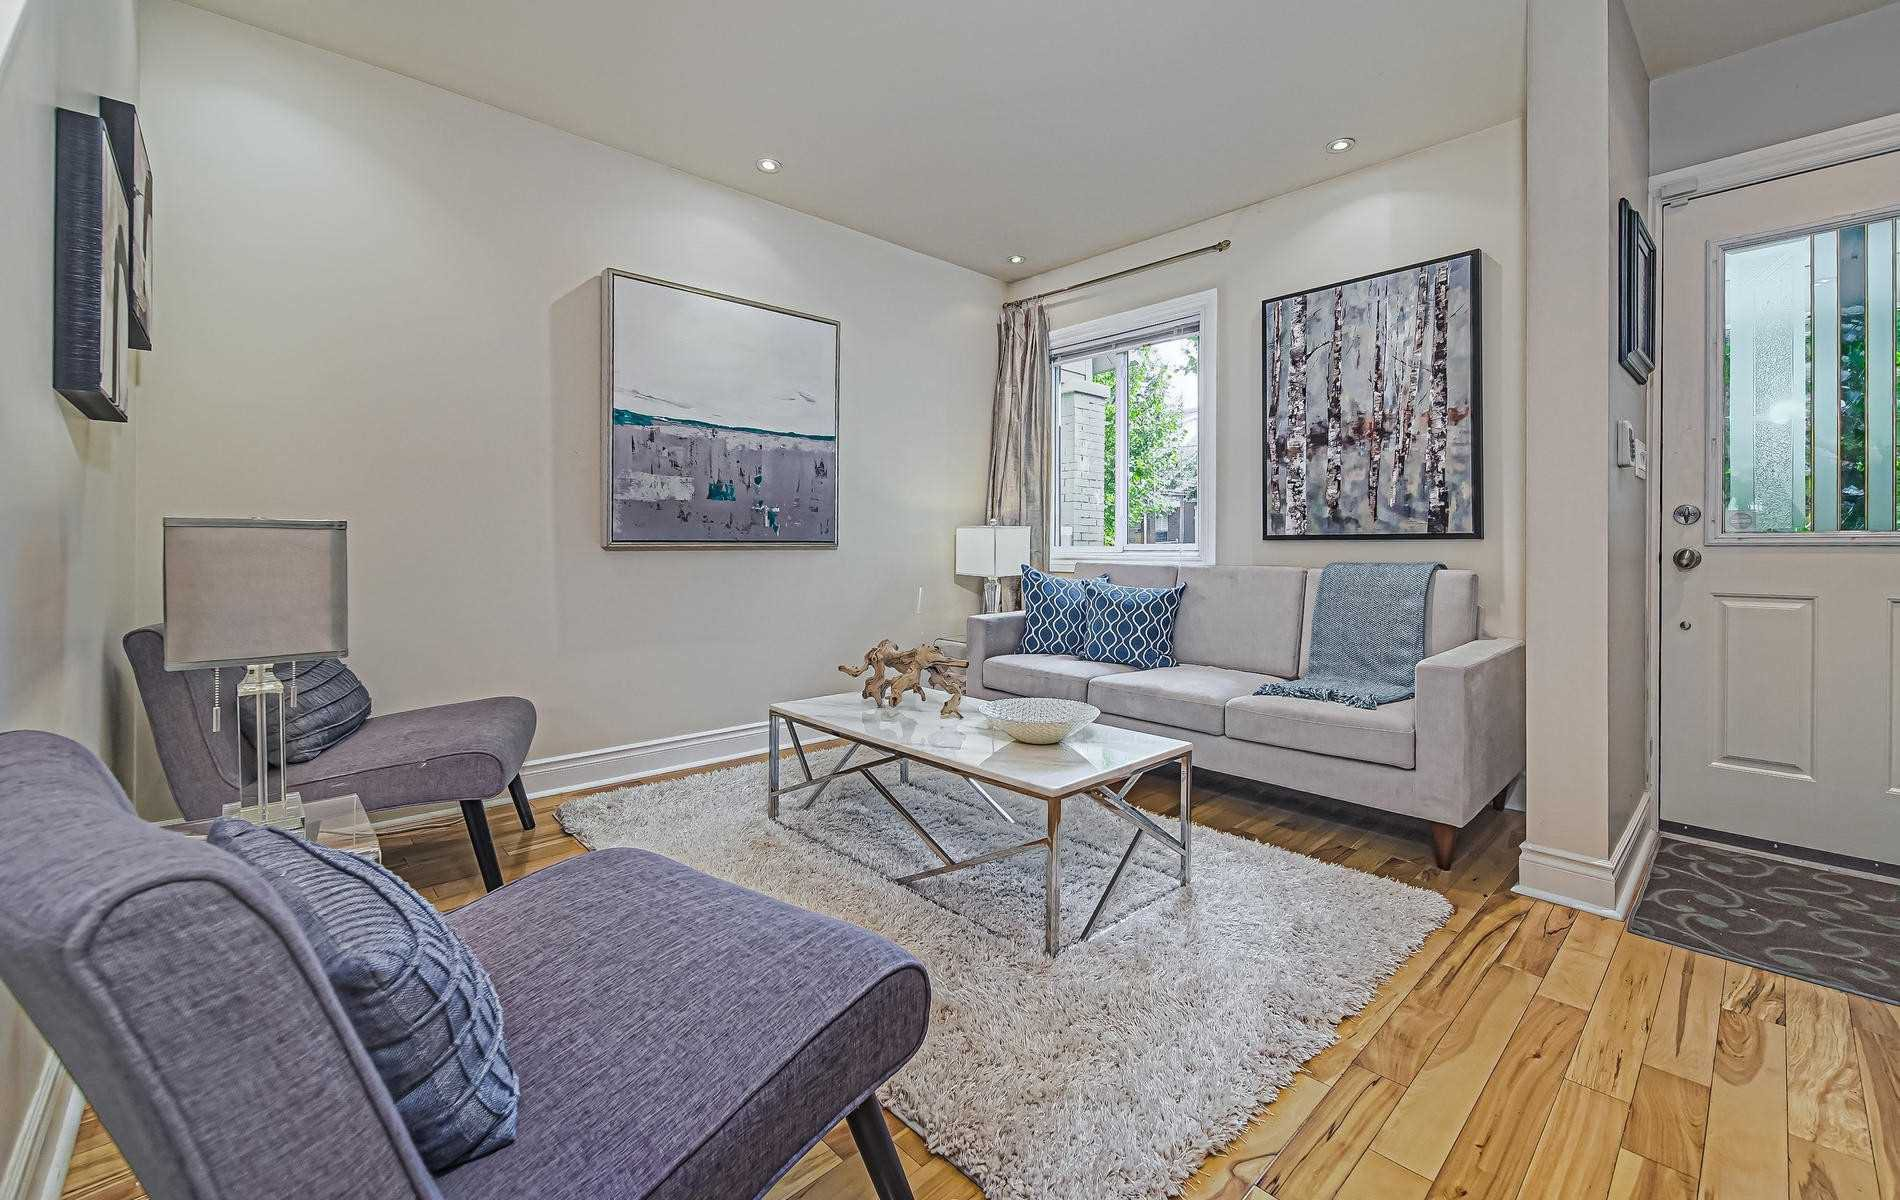 Main Photo: 84 Rushbrooke Avenue in Toronto: South Riverdale House (2-Storey) for sale (Toronto E01)  : MLS®# E4600791